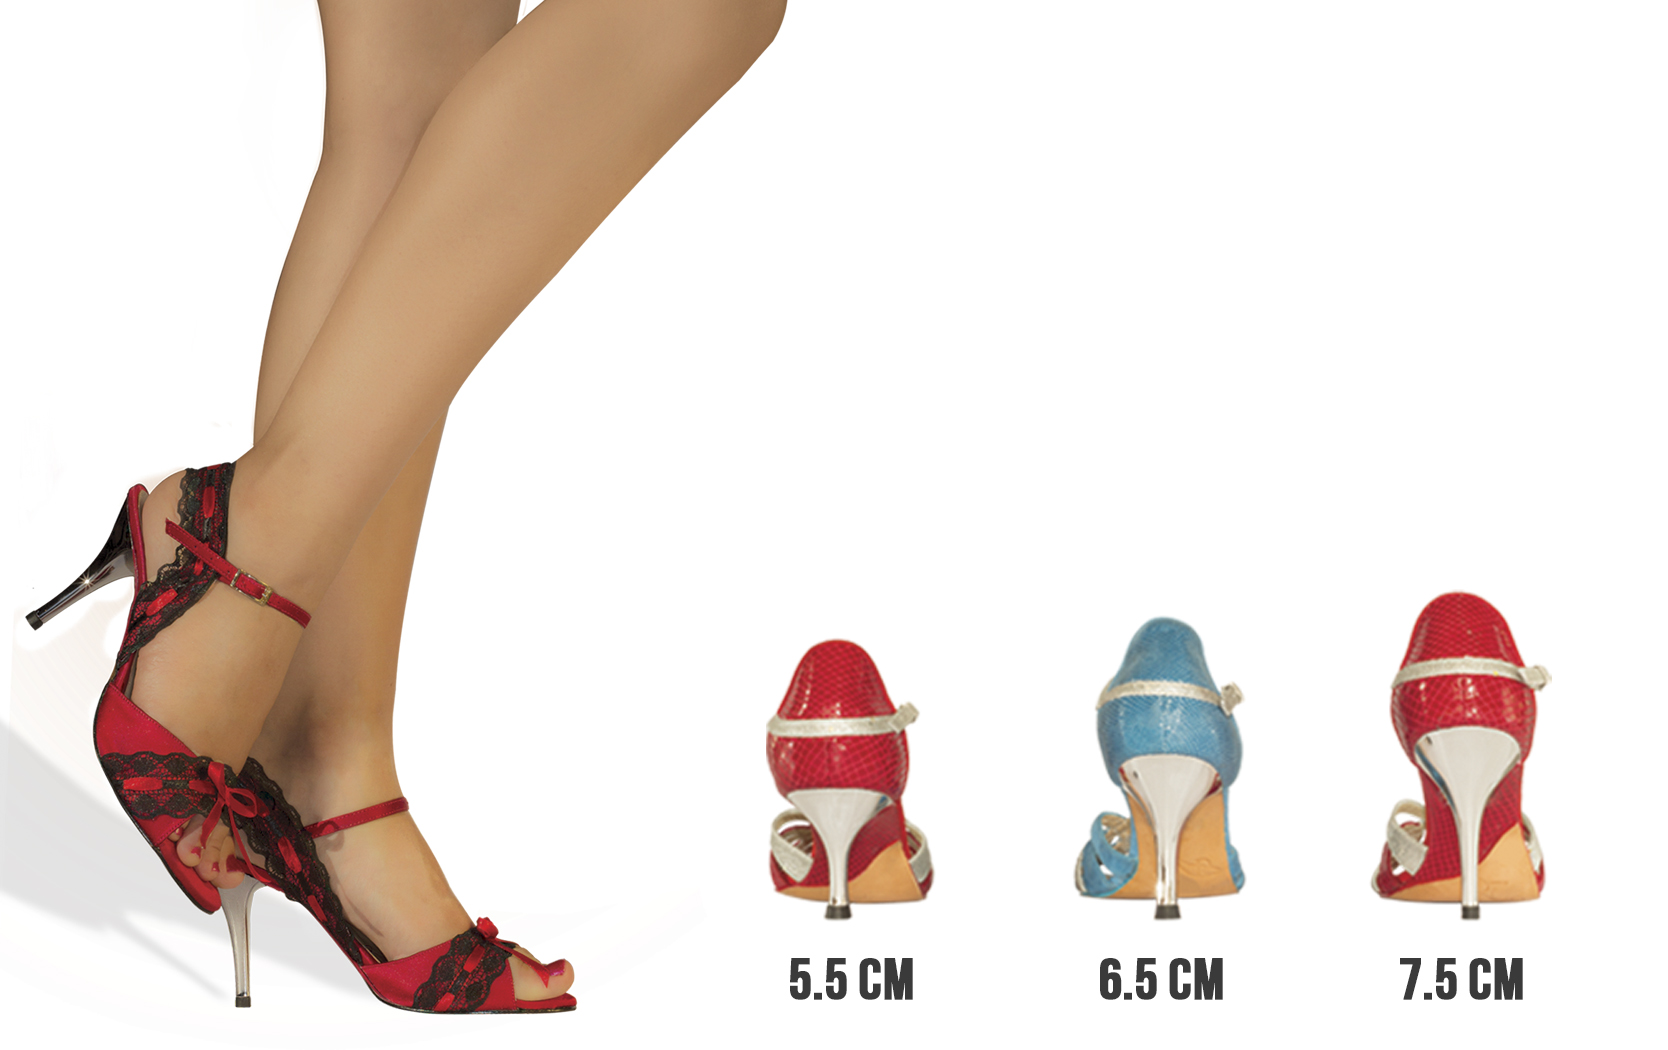 Heel height options with proper measurements in centimeter.